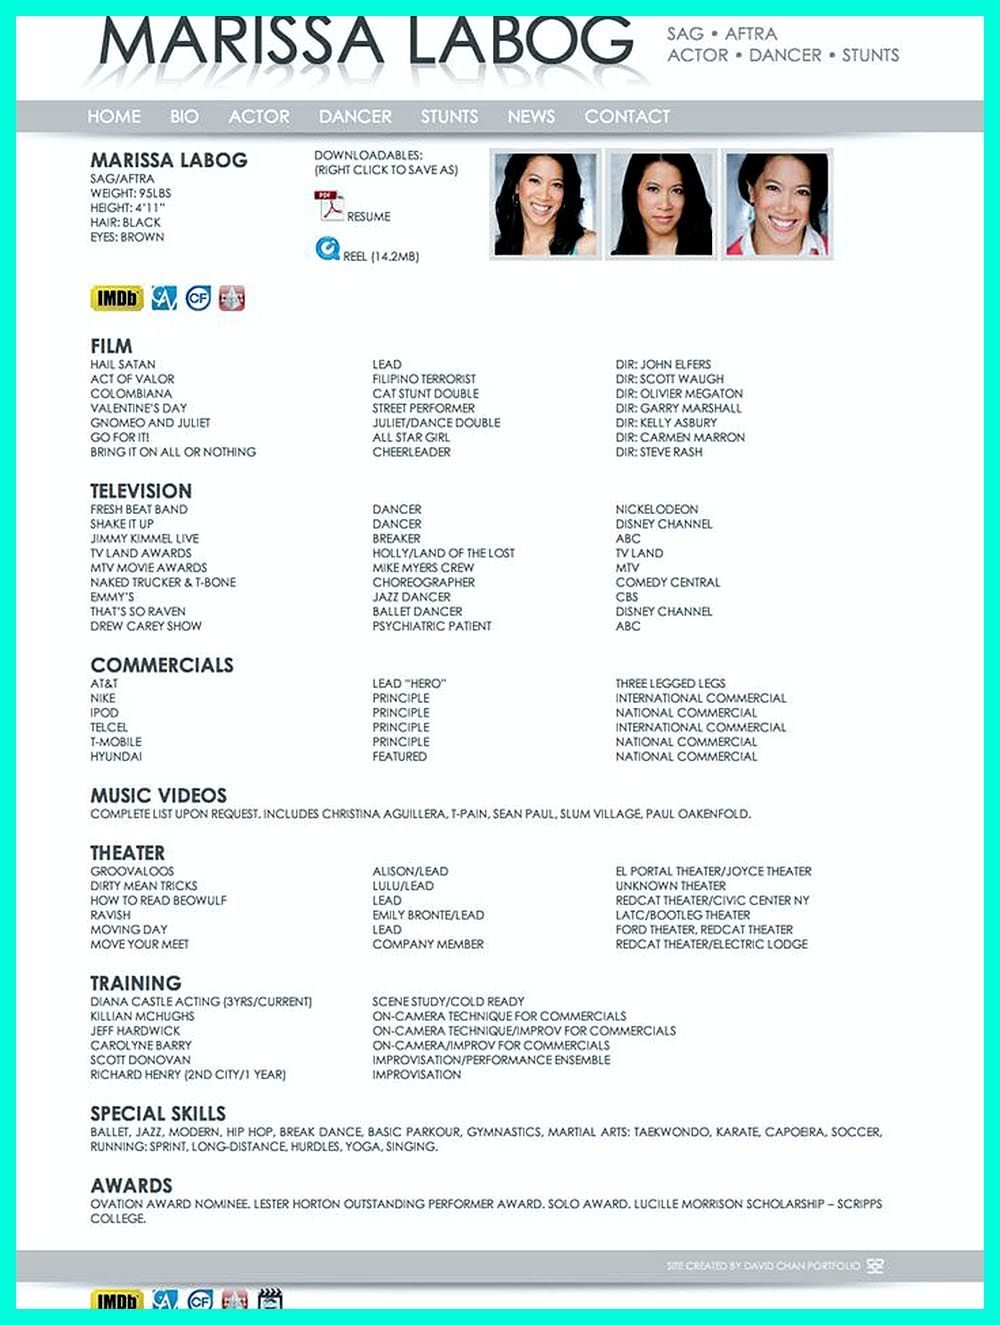 Dance Resume Can Be Used For Both Novice And Professional Dancer Most Job Of Dancer Has Minimum Requirements That Not All Dance Resume Resume Examples Resume